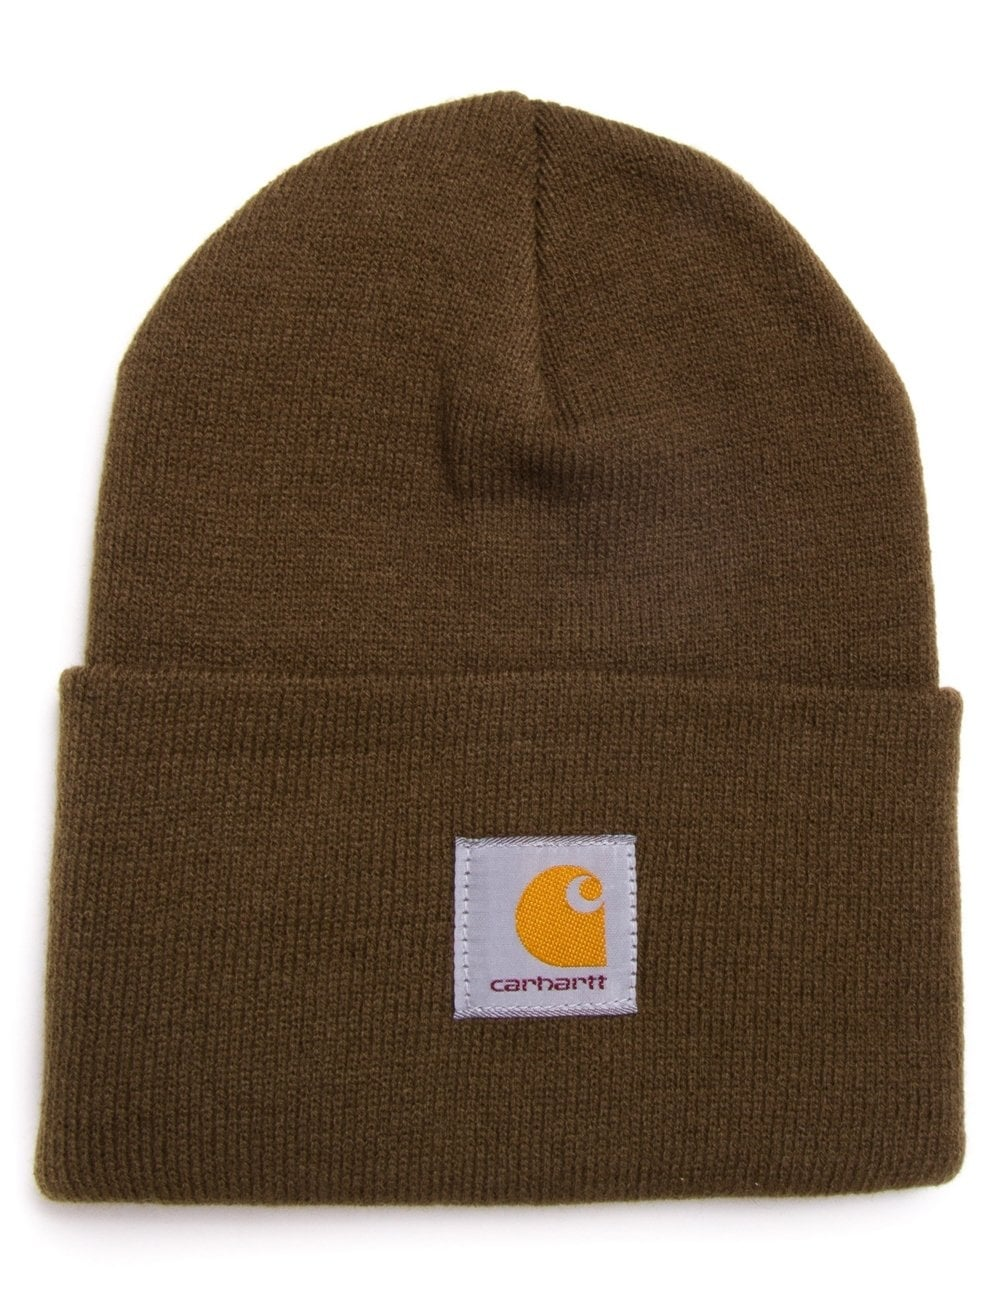 20bb5df2152 Carhartt WIP Watch Hat - US Olive Darp - Accessories from Fat Buddha ...